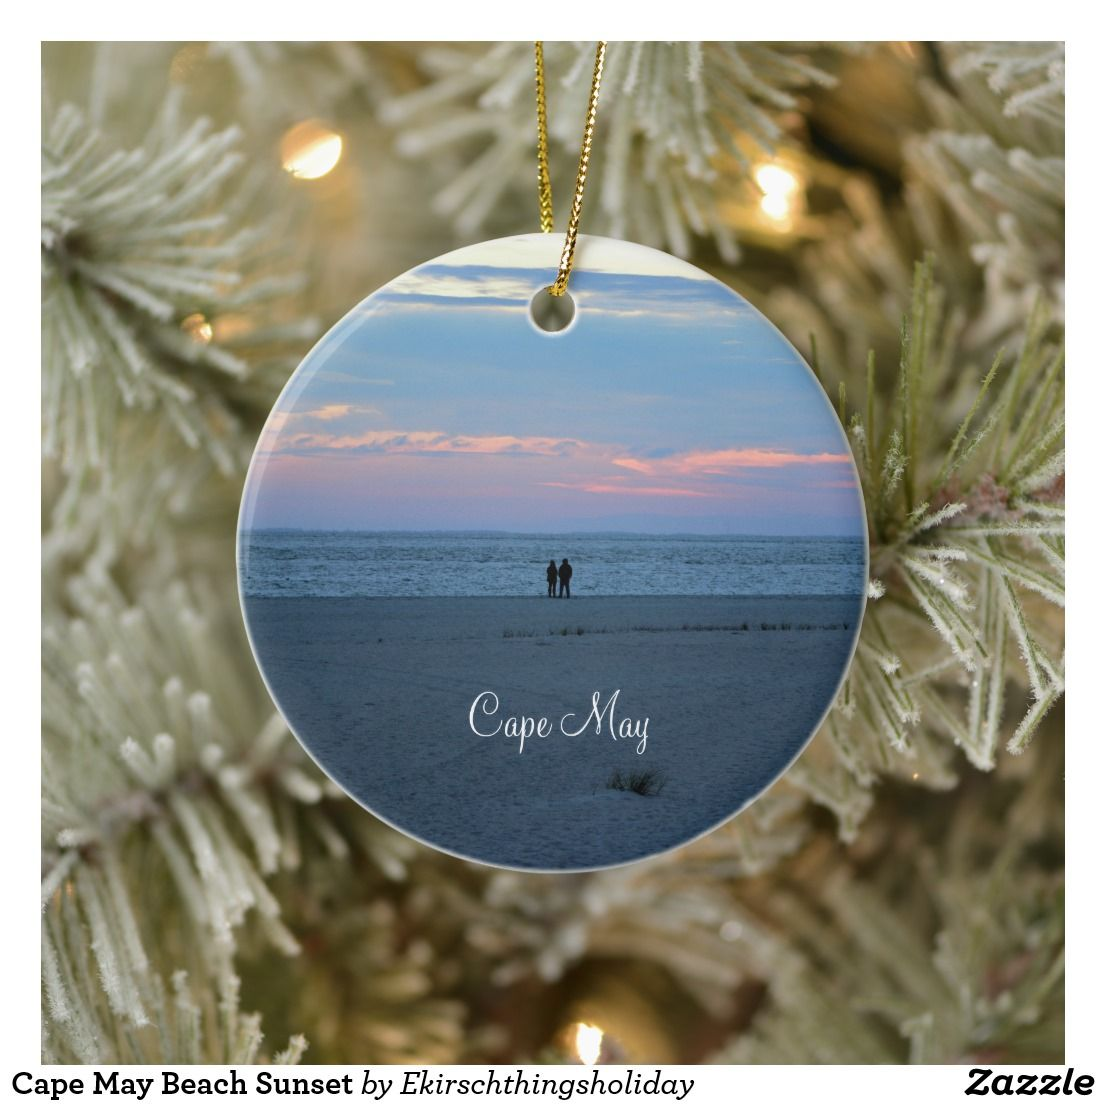 Cape may beach sunset ceramic ornament with